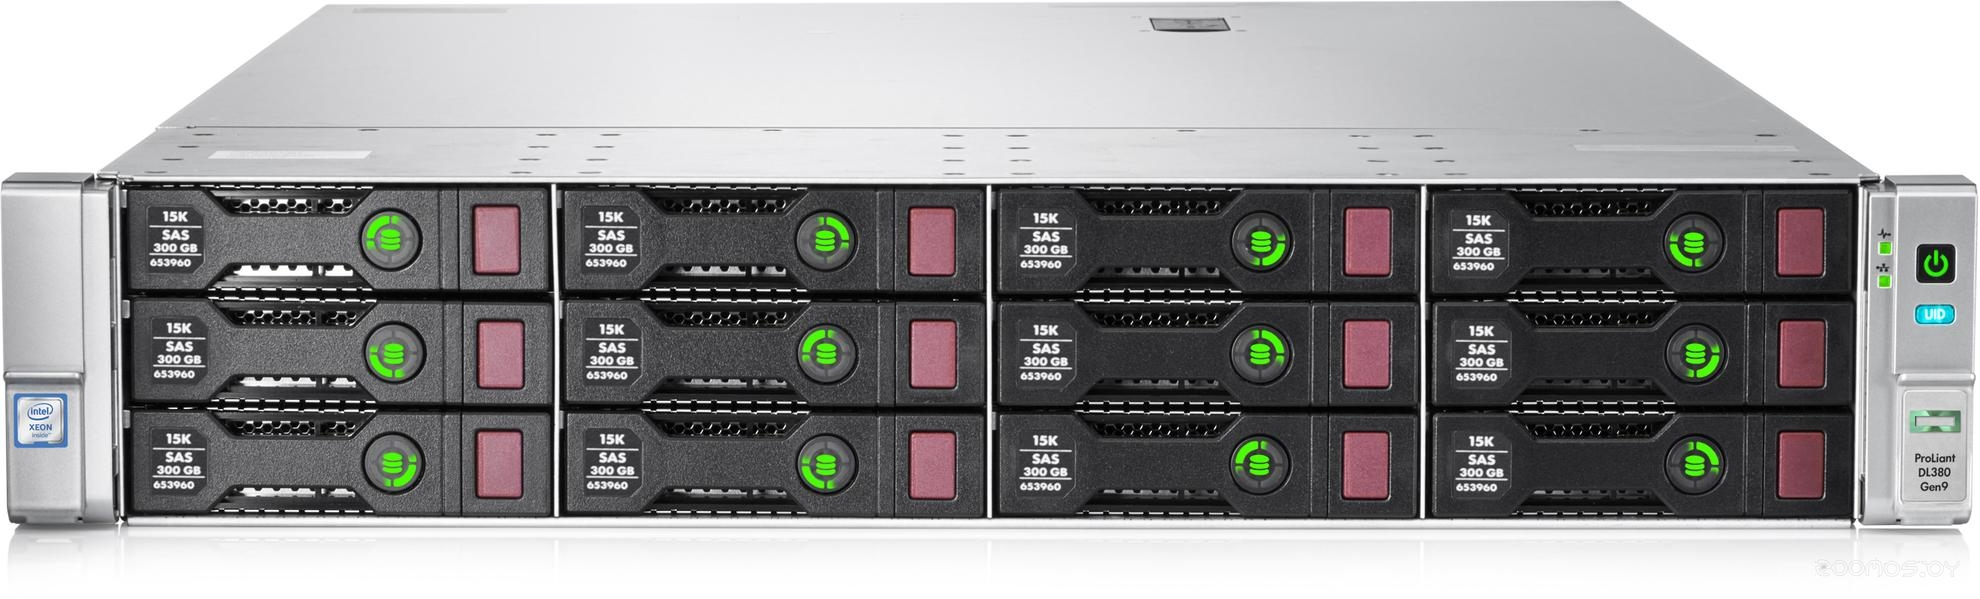 Сервер HPE Proliant DL380 Gen9